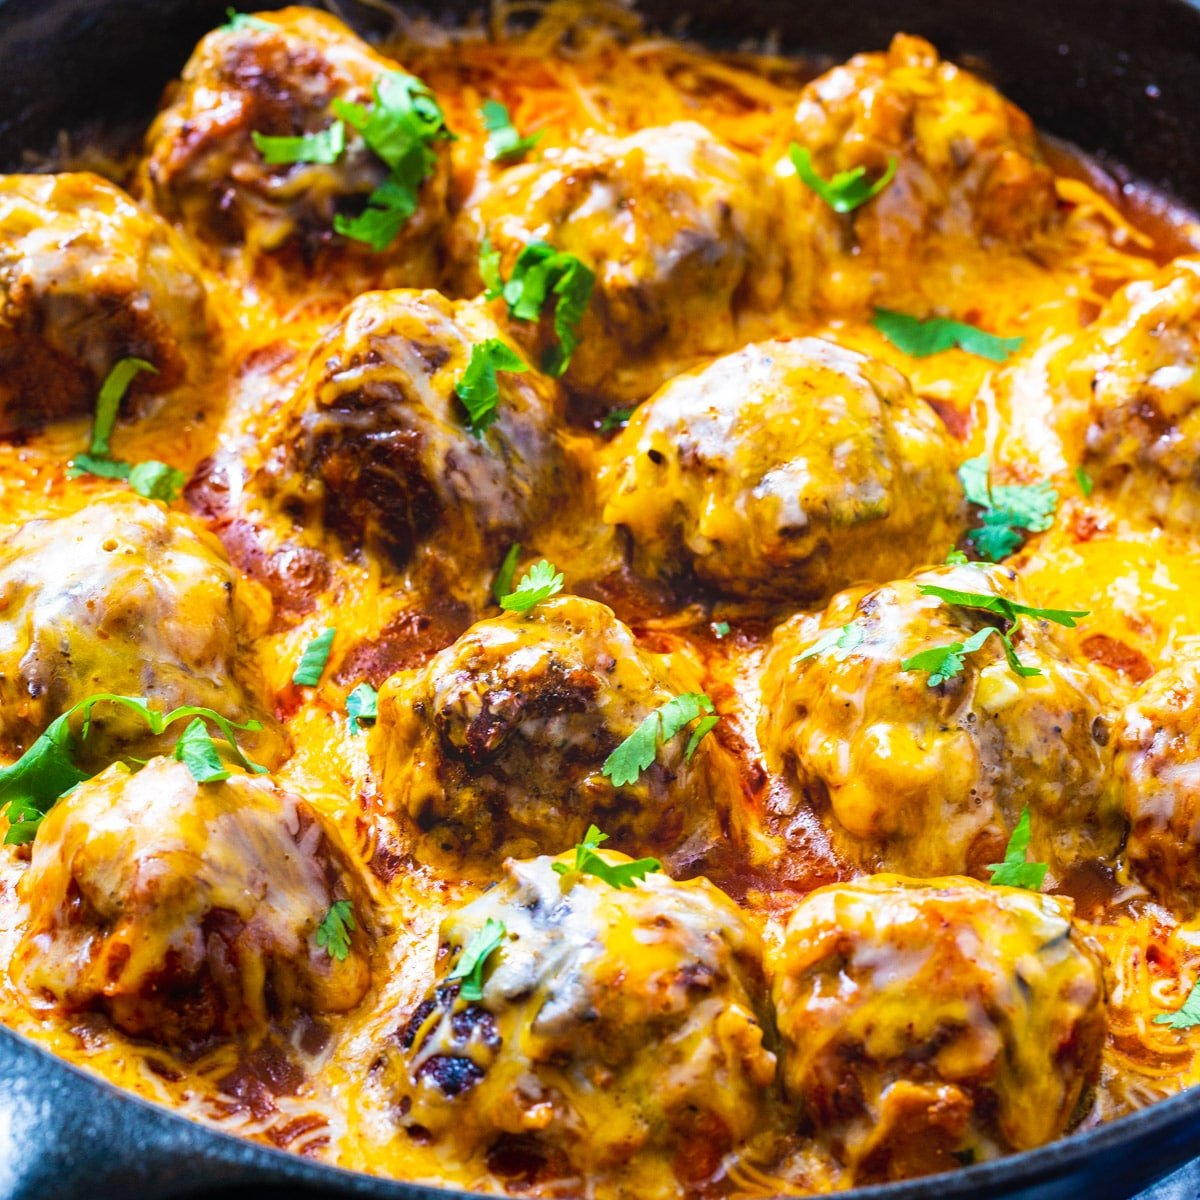 Tex Mex Meatballs coated with cheese in skillet.